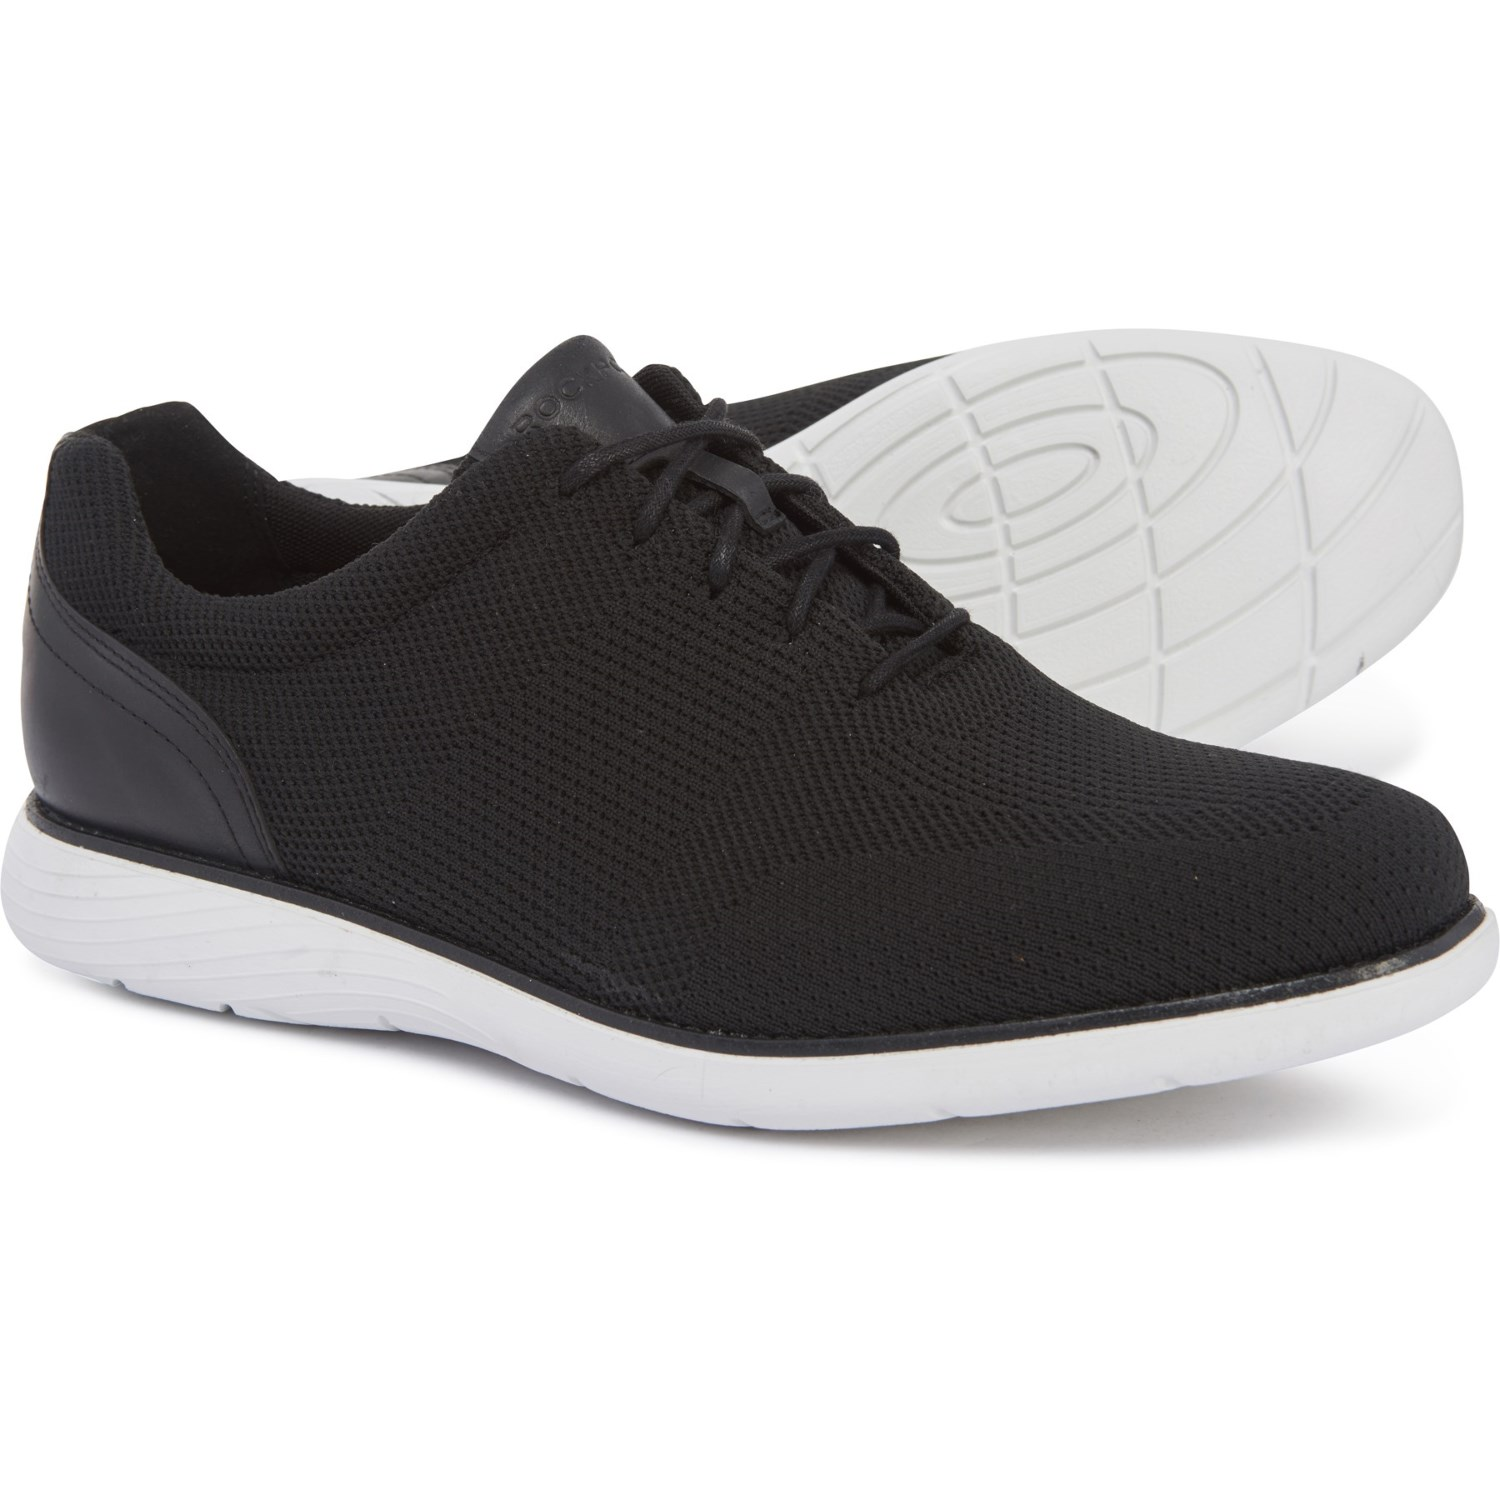 Rockport Garett Mesh Lace Up Sneakers (For Men)